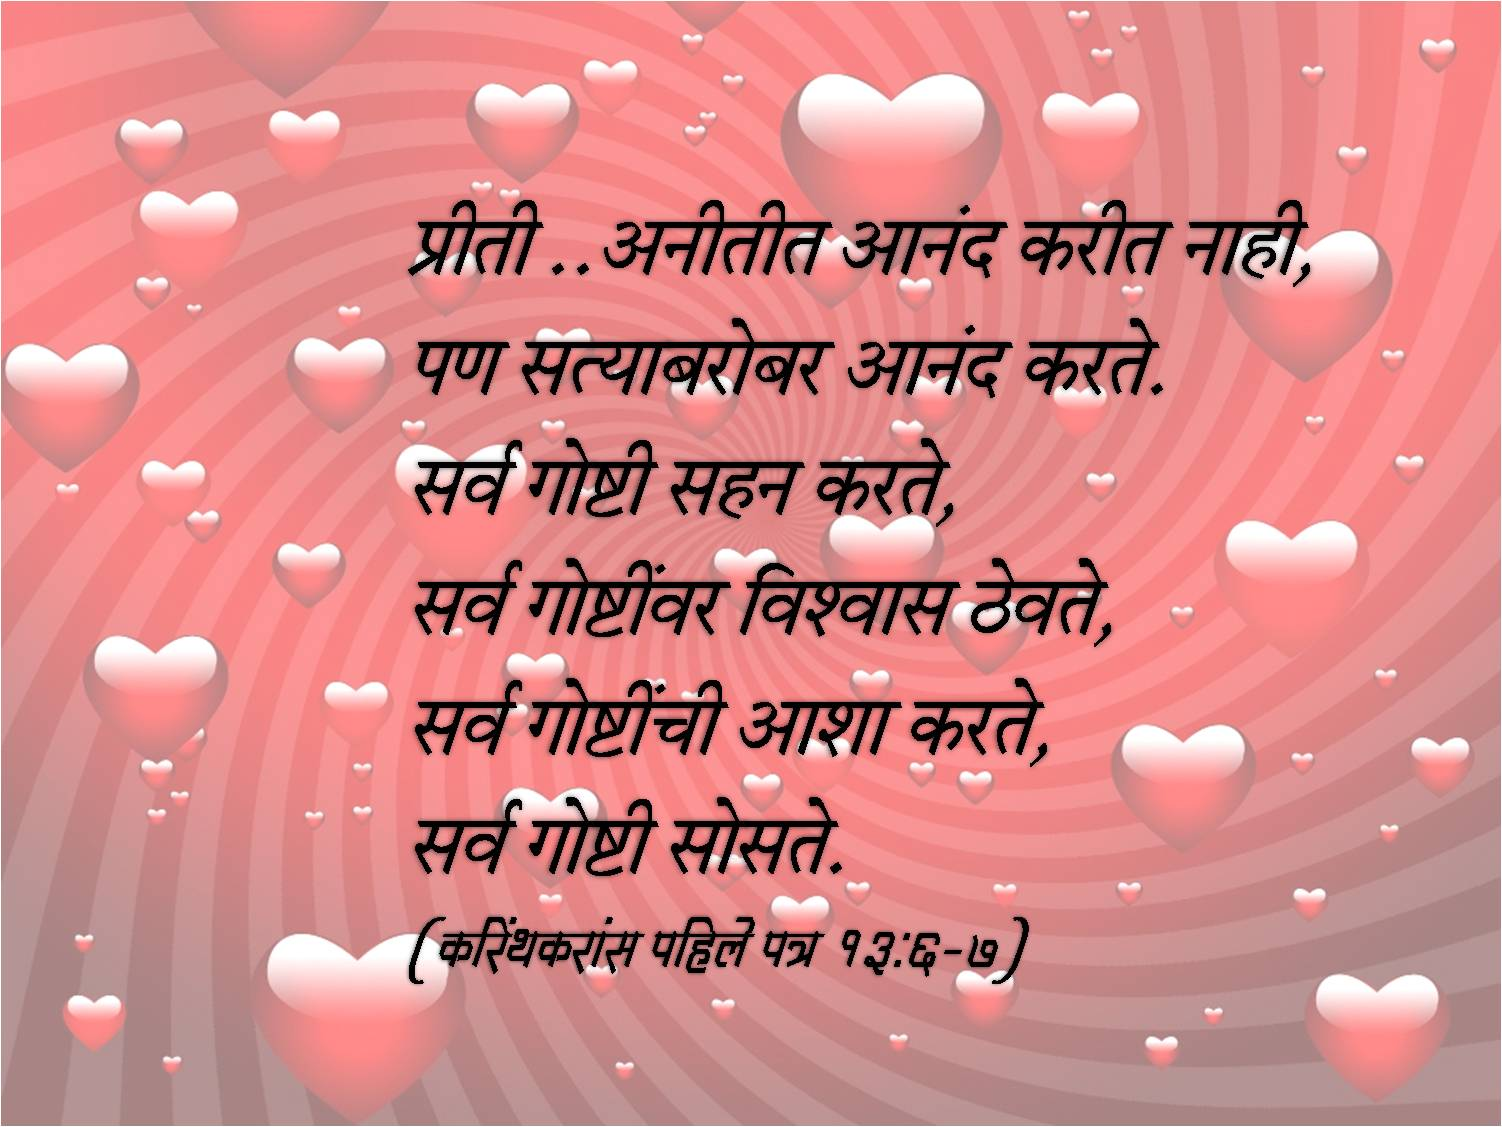 Marathi Bible Wallpapers for Valentine's Day